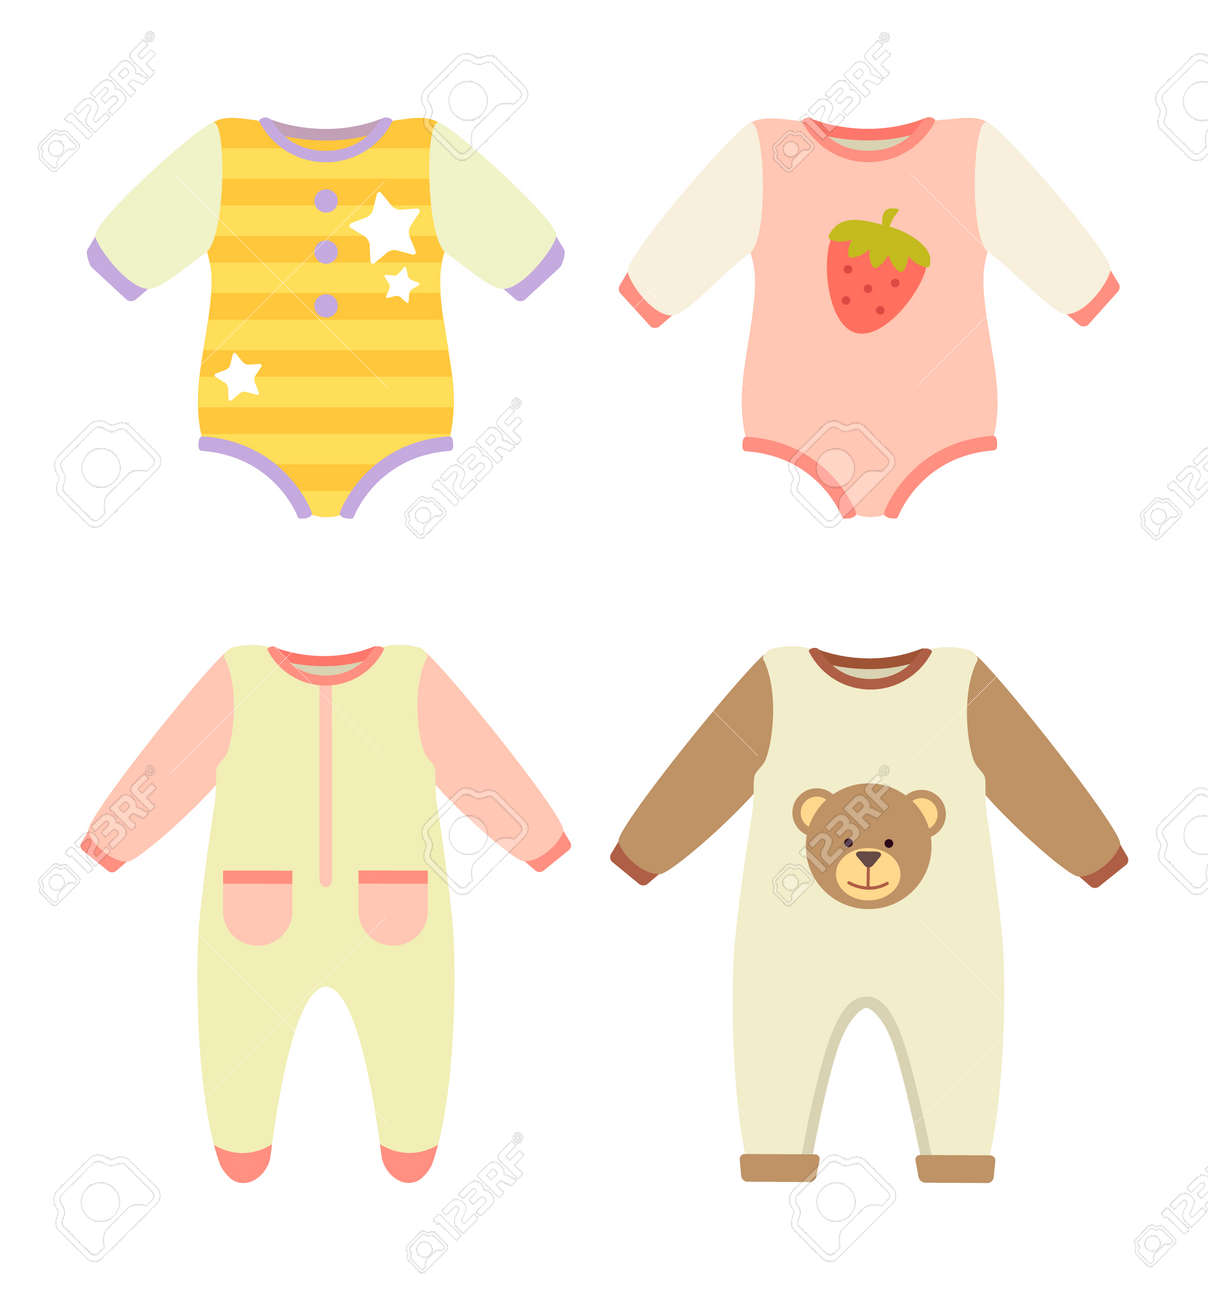 ad3f8458e971 Baby Clothes Jumpers Set